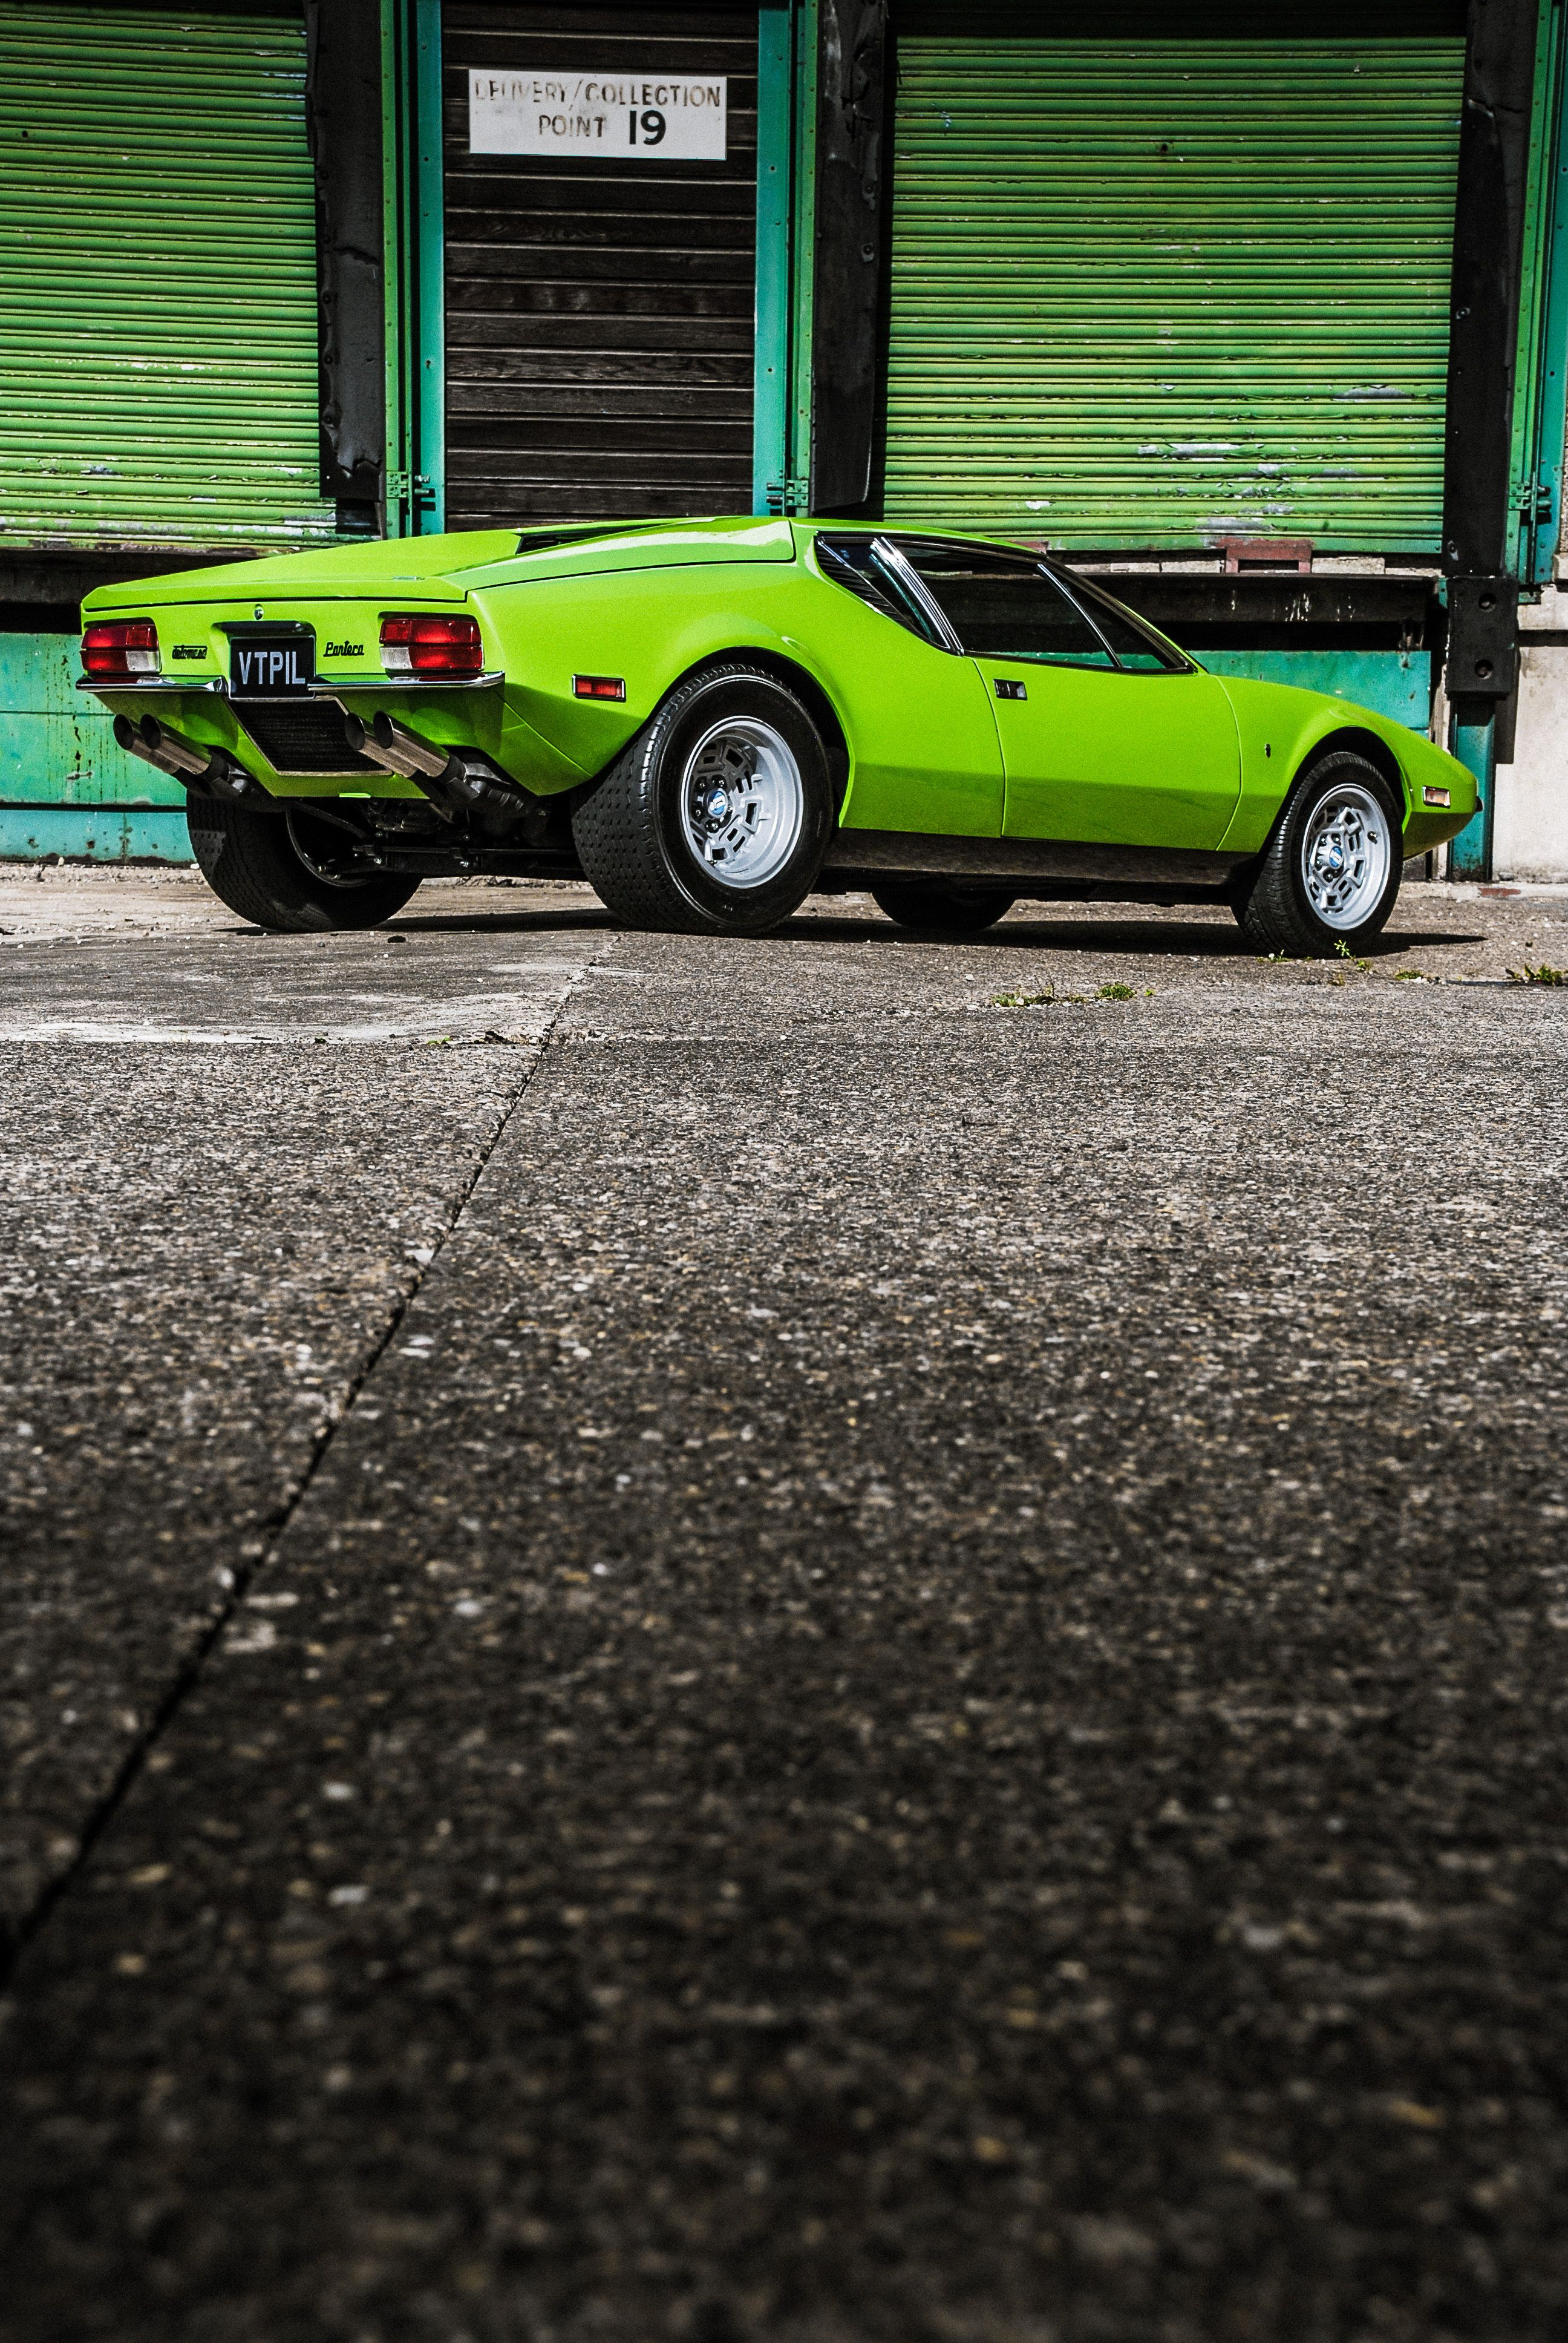 1972 De Tomaso Pantera Iconic Classic Italian Supercar In Factory Apple Green Fully Restored At Three Point Fo Super Cars Classic Cars Muscle Classic Cars